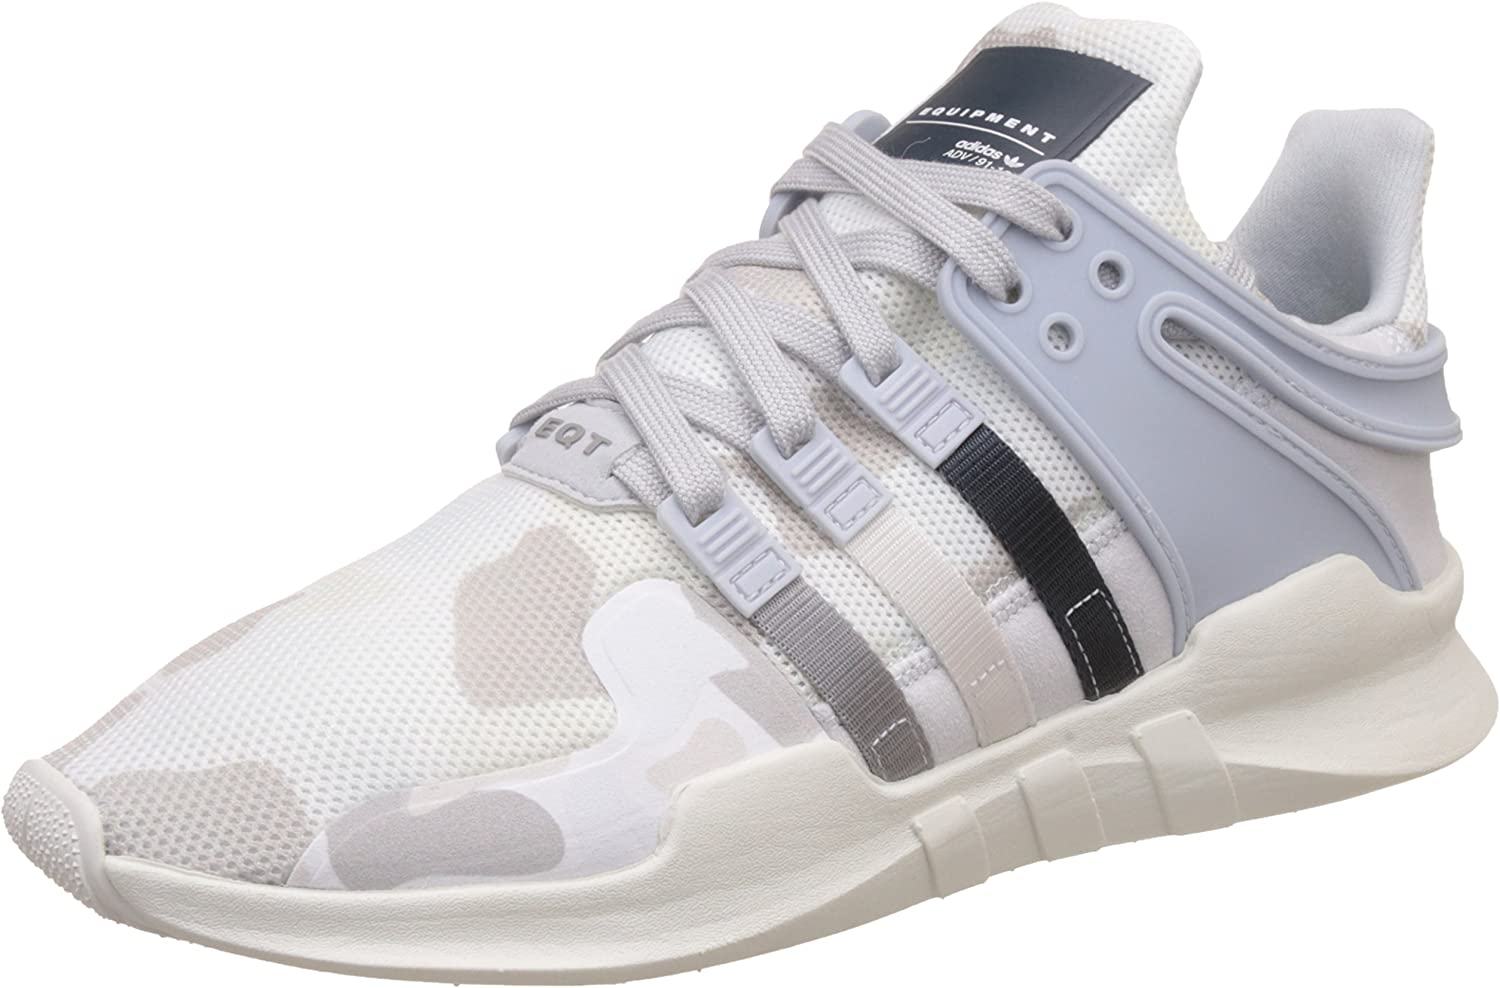 Adidas Men's EQT Support ADV Low Neck Sneakers, Men, Multicoloured